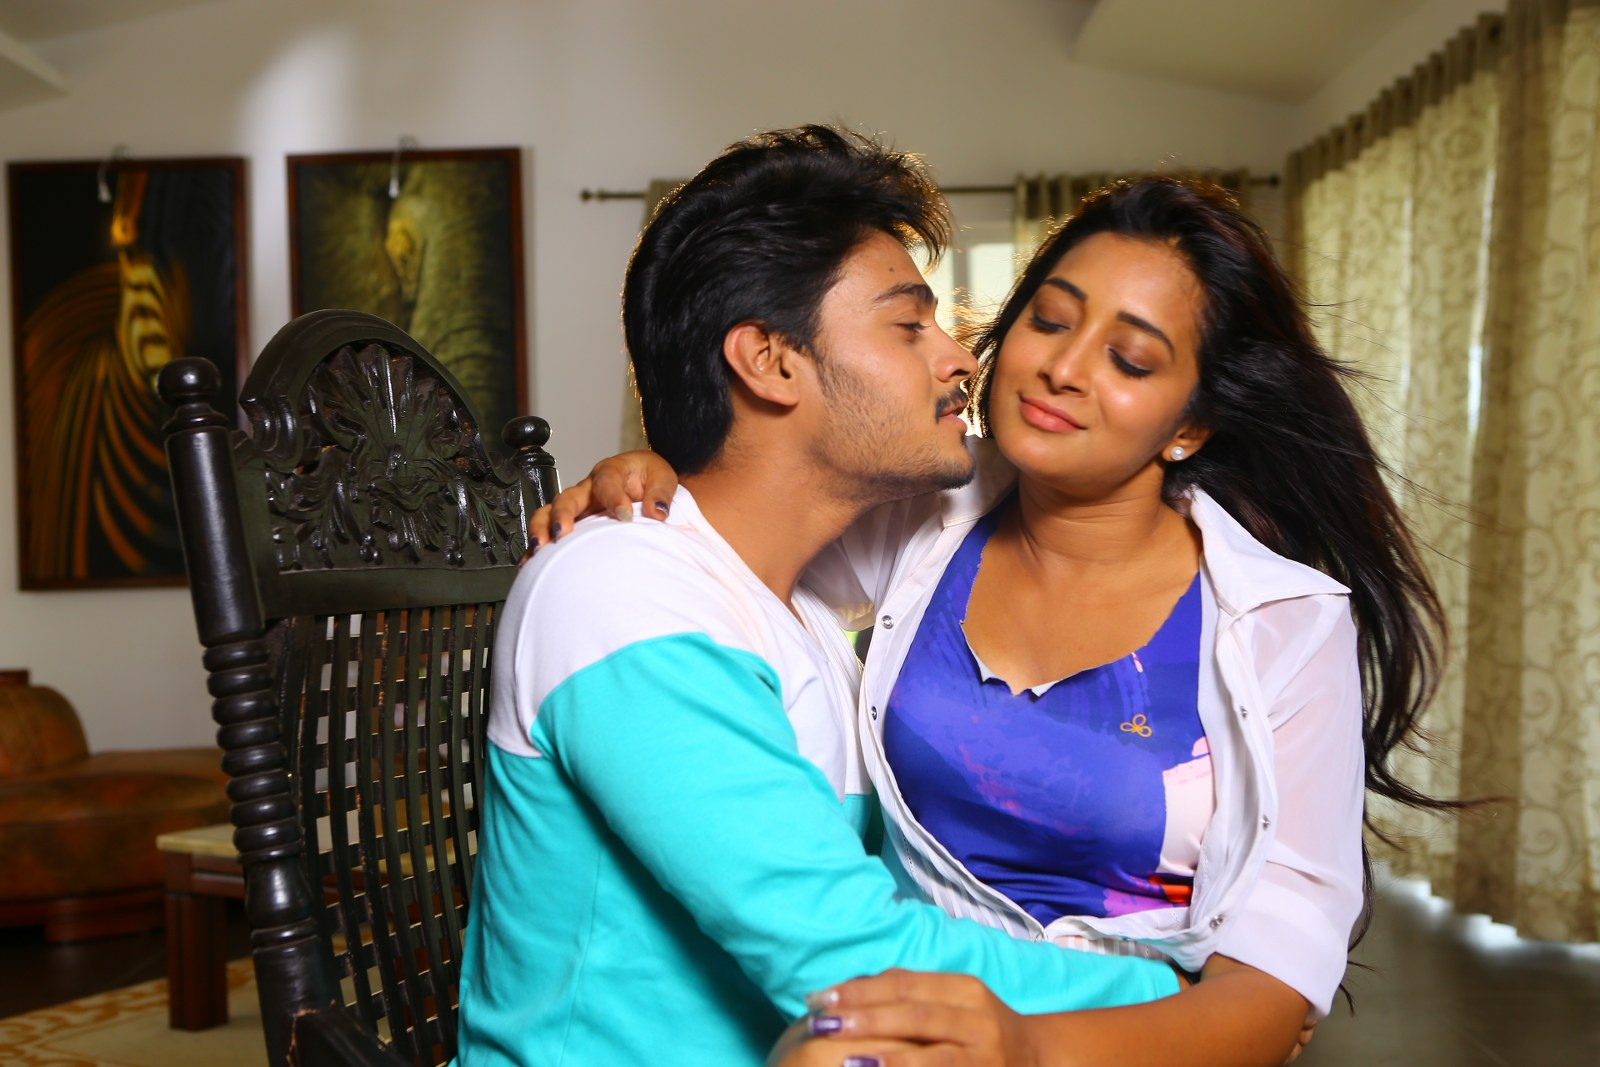 Iddari madhya 18 Movie stills-HQ-Photo-1